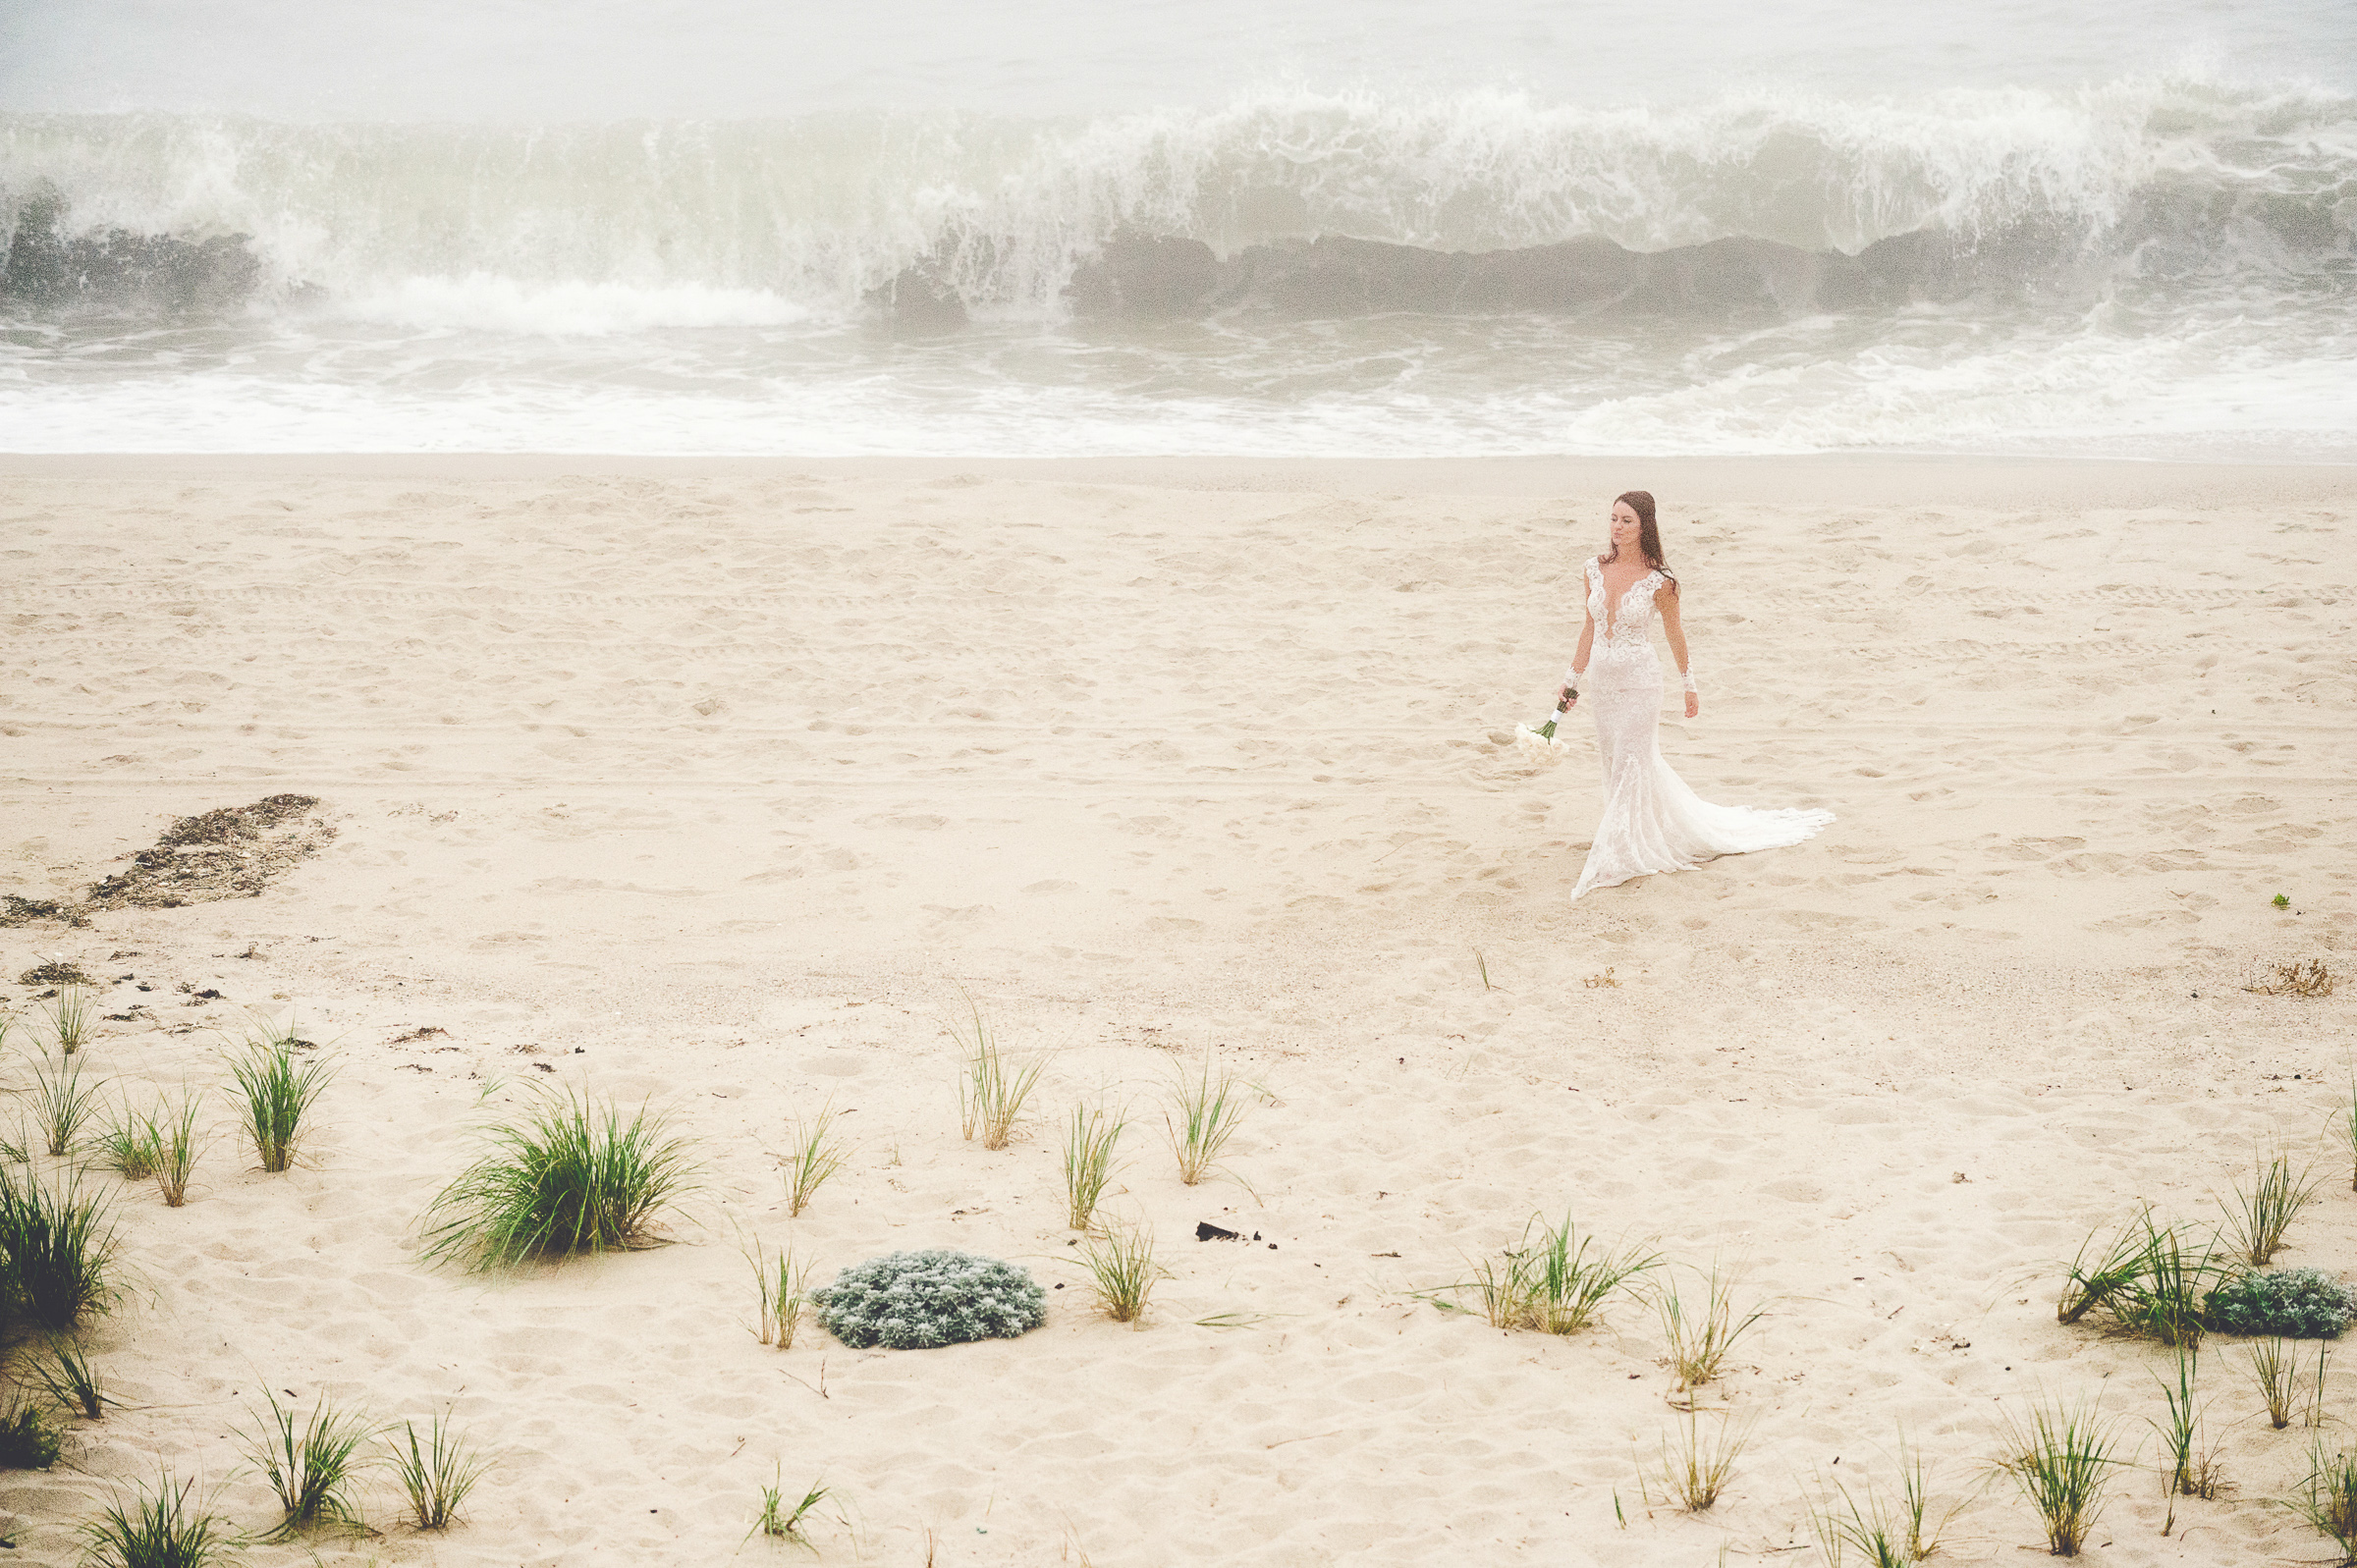 bride-on-beach-with-surf-zofia-co-photography